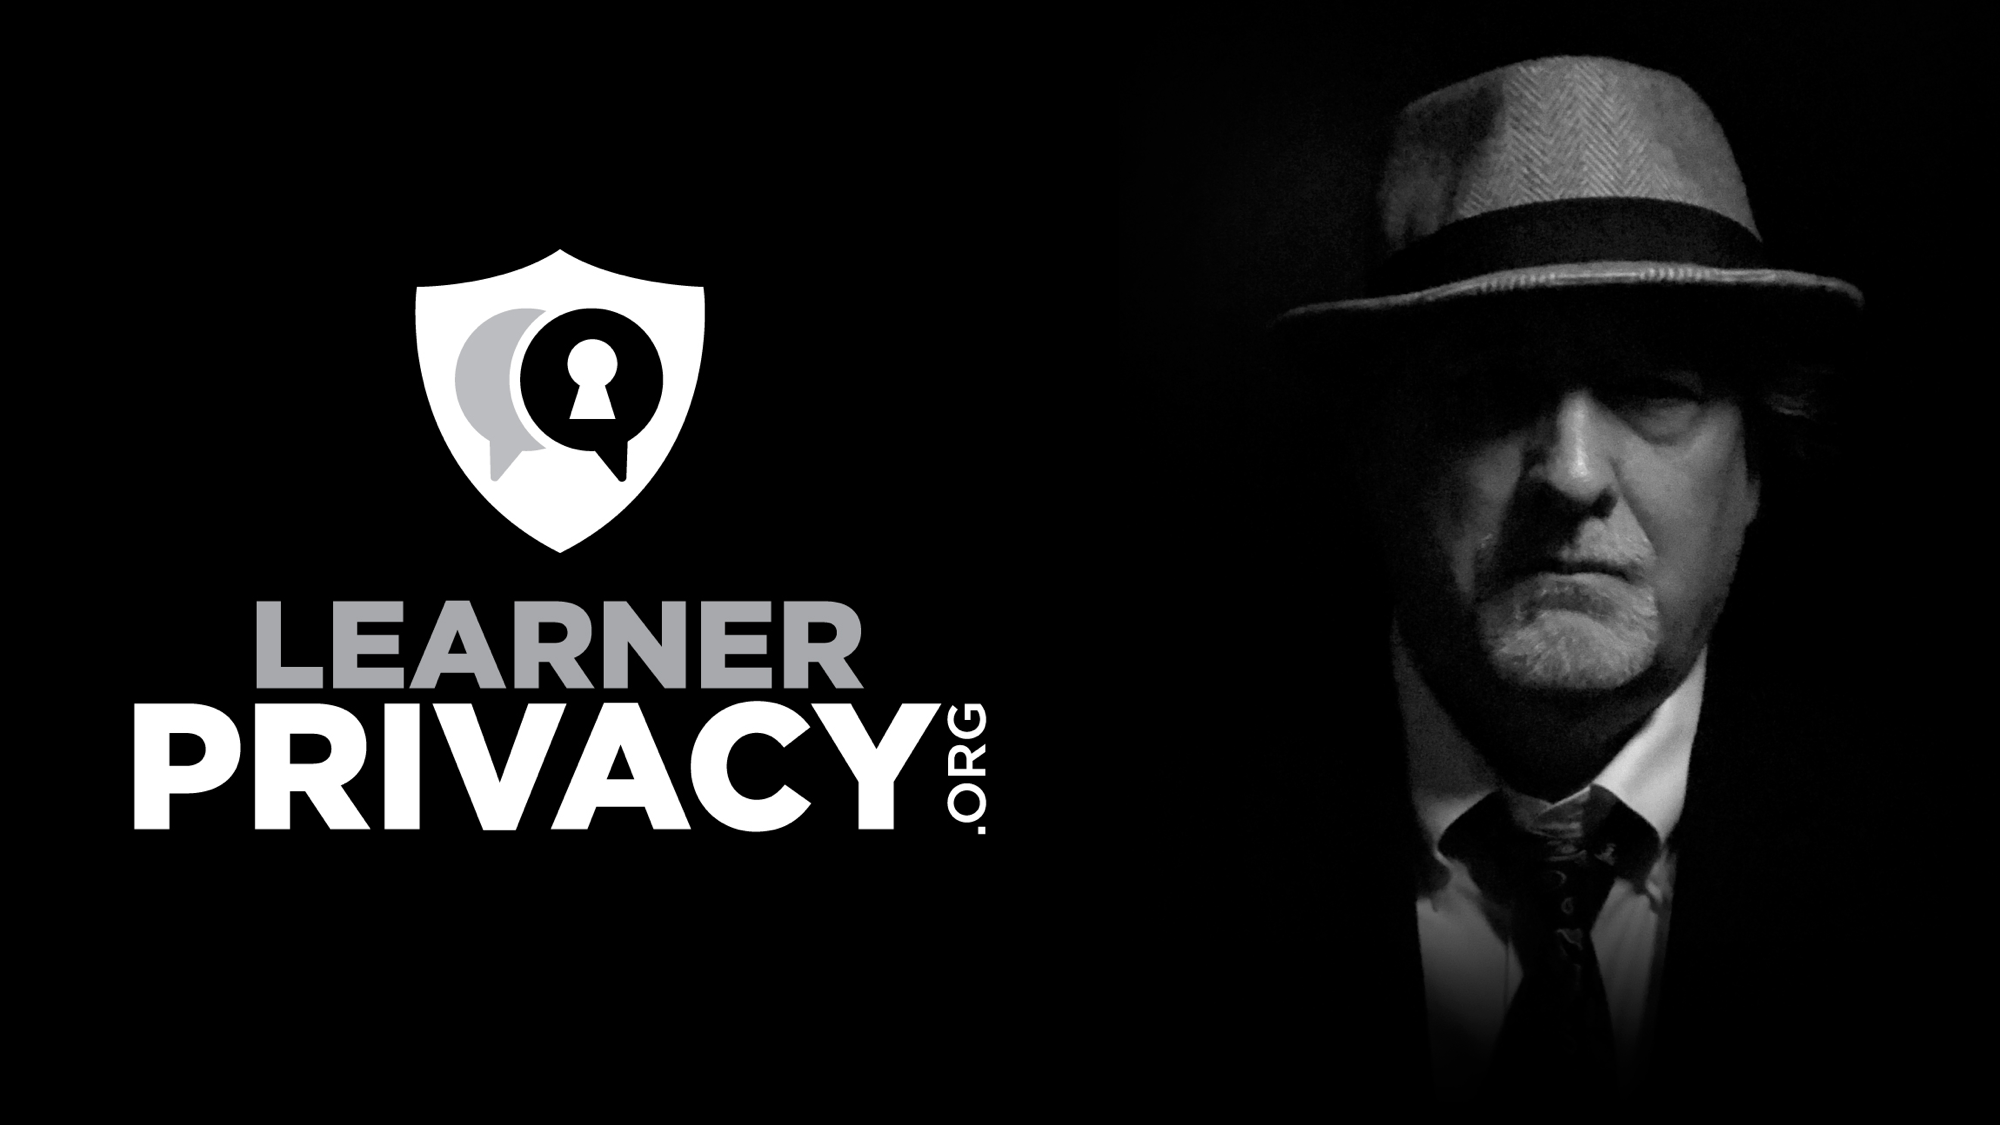 The Learner Privacy Podcast